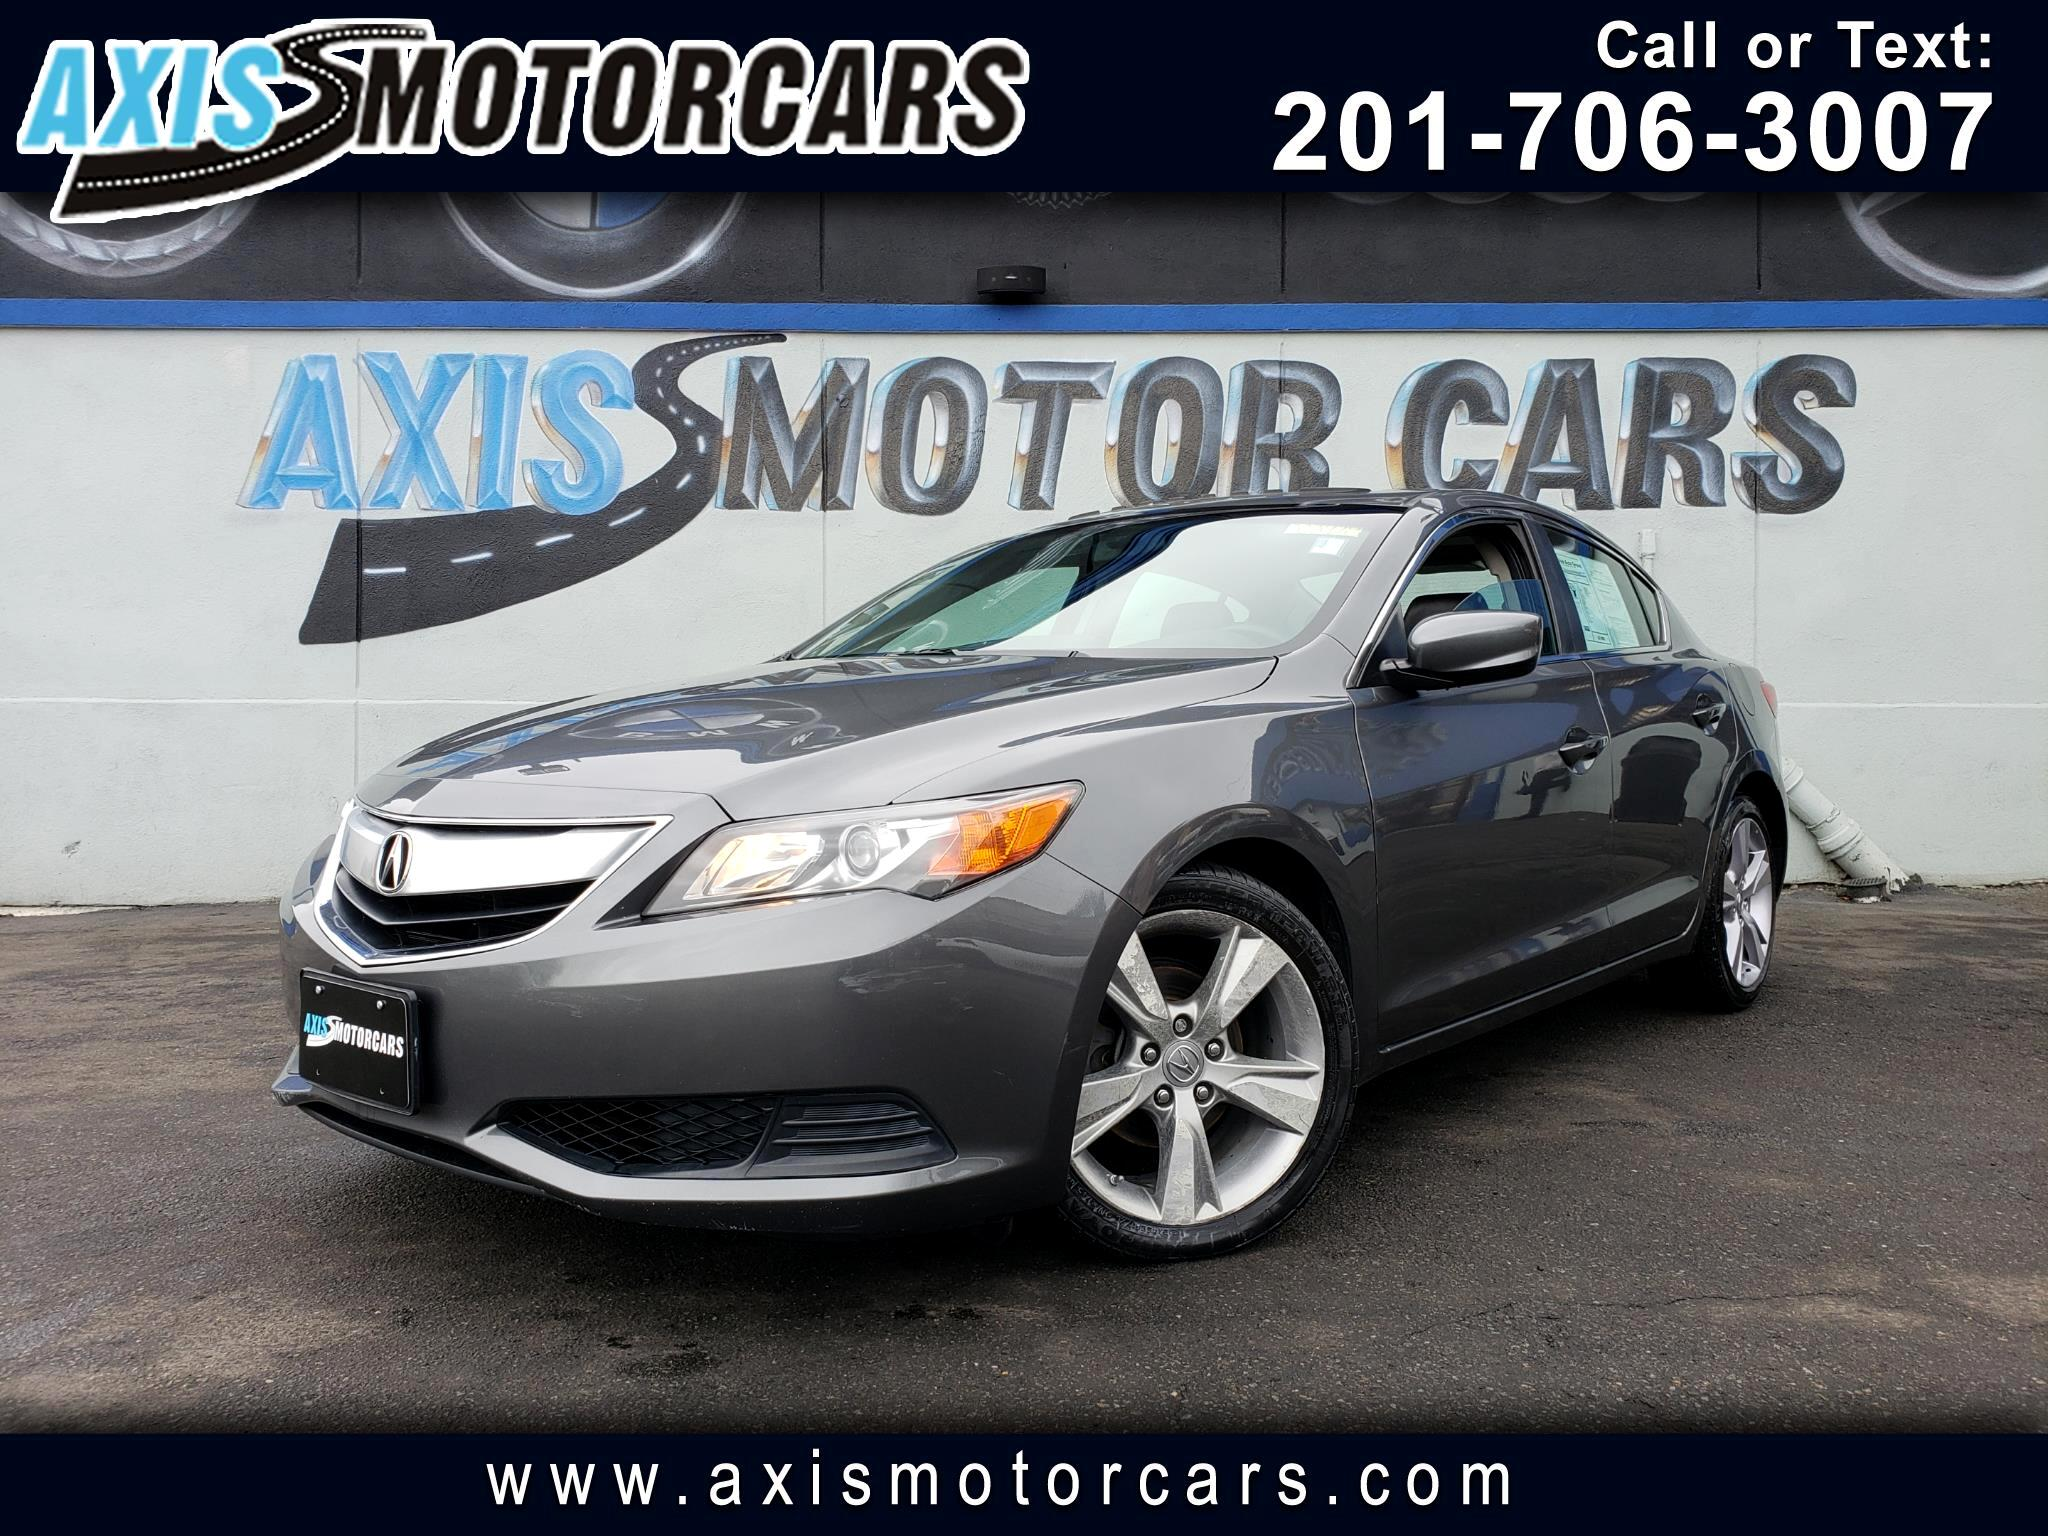 2014 Acura ILX 4dr w/Sun Roof Bakup Camera